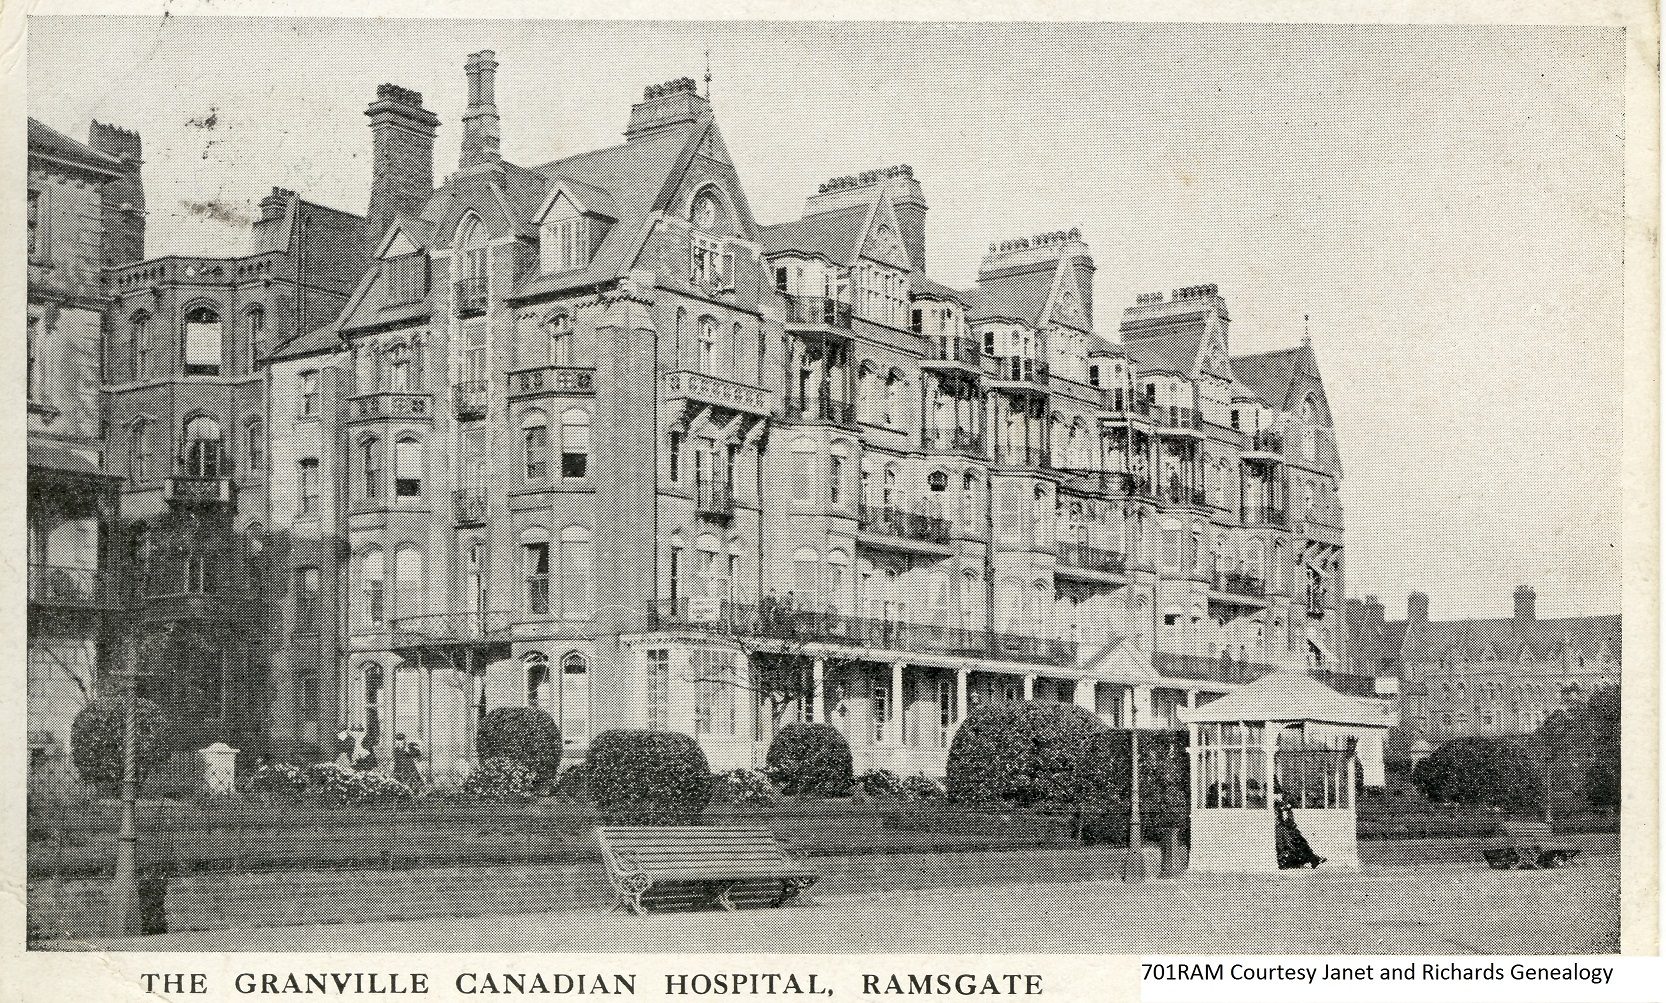 The Granville Canadian Hospital